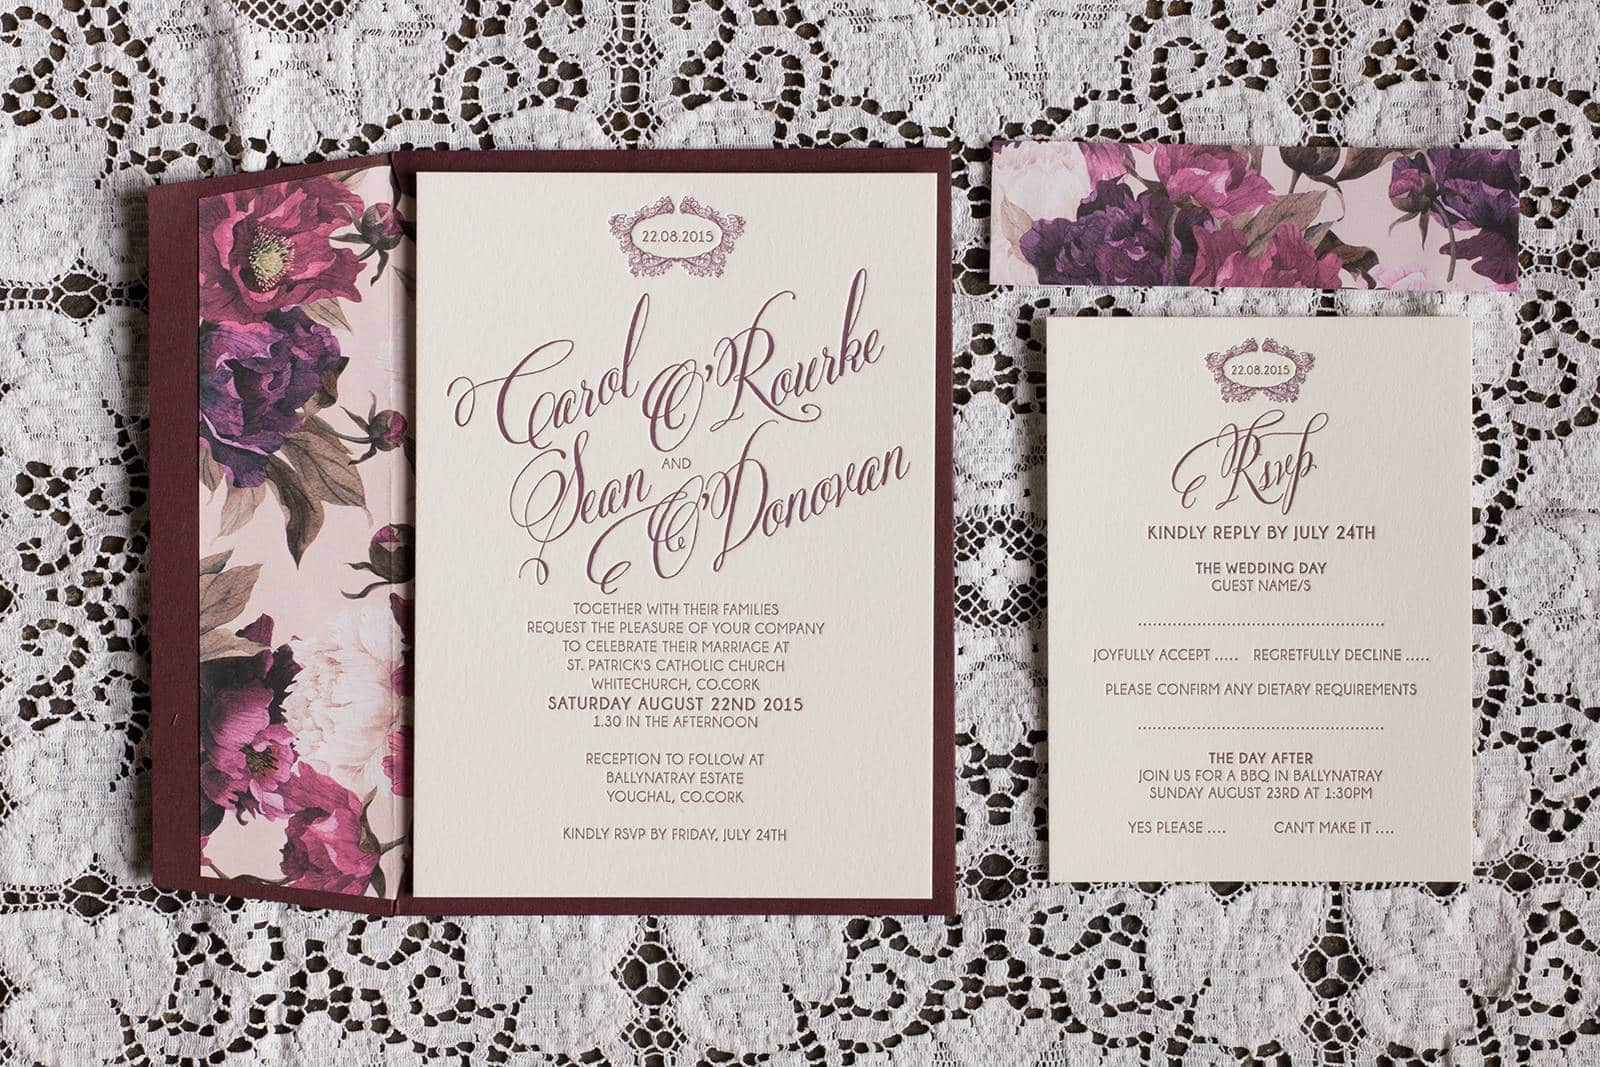 Carol & Sean Wedding Invitation Suite